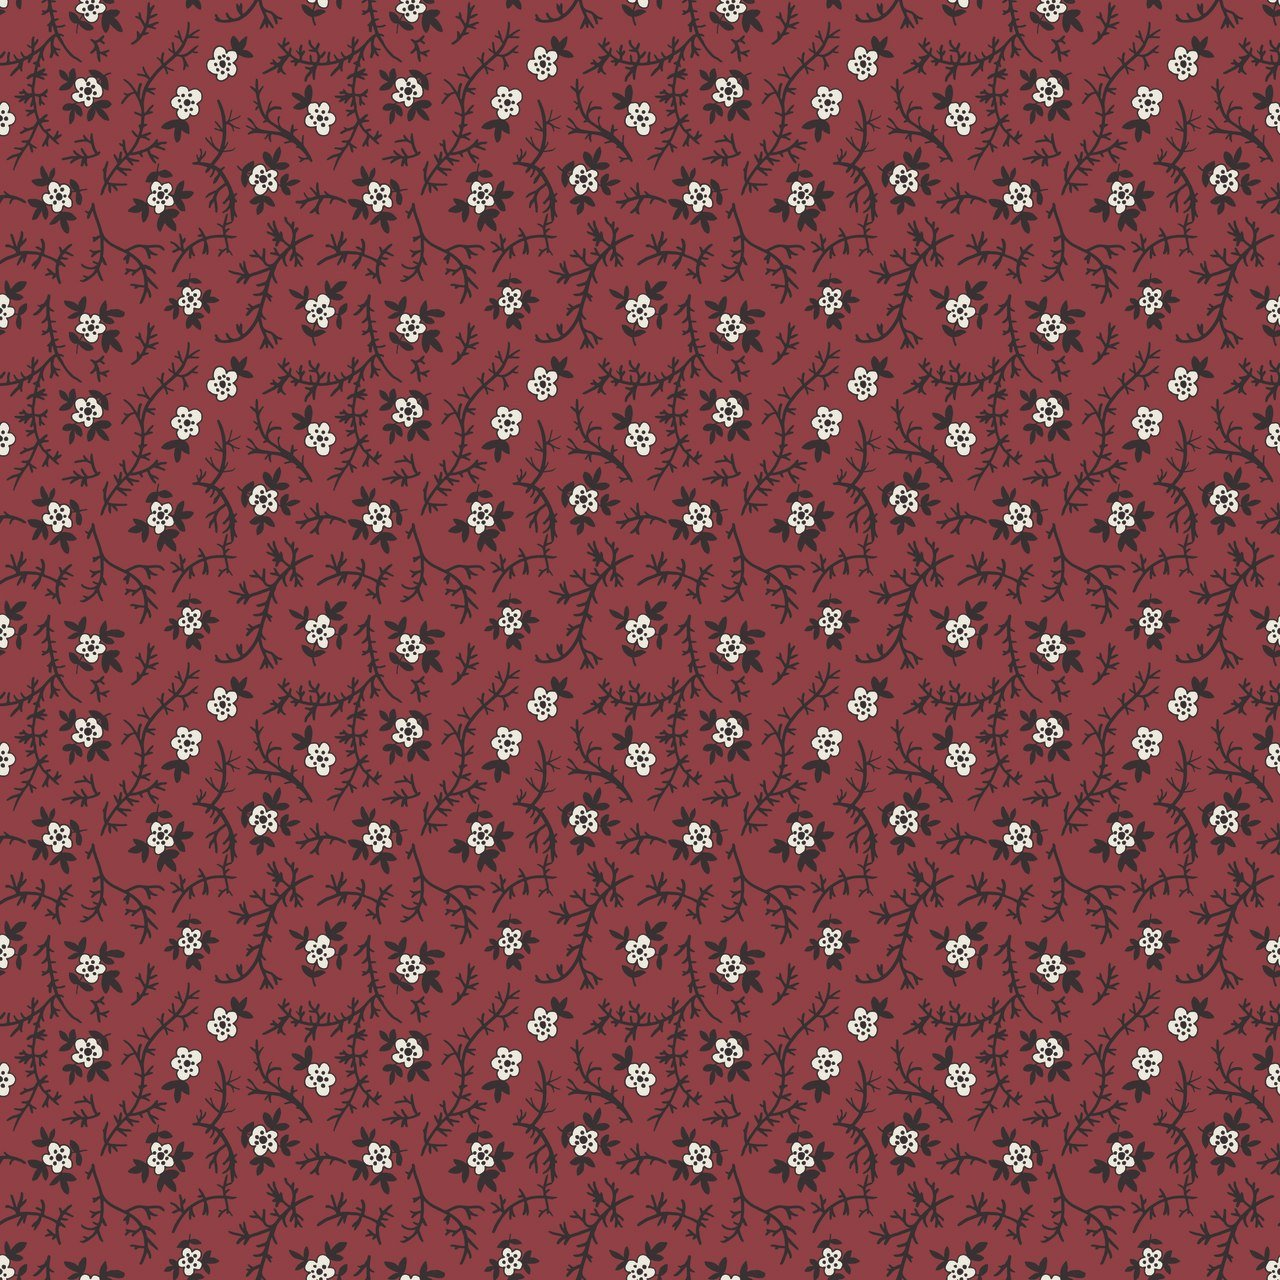 Cumberland County by Leutenegger for Midwest Textiles : L01210